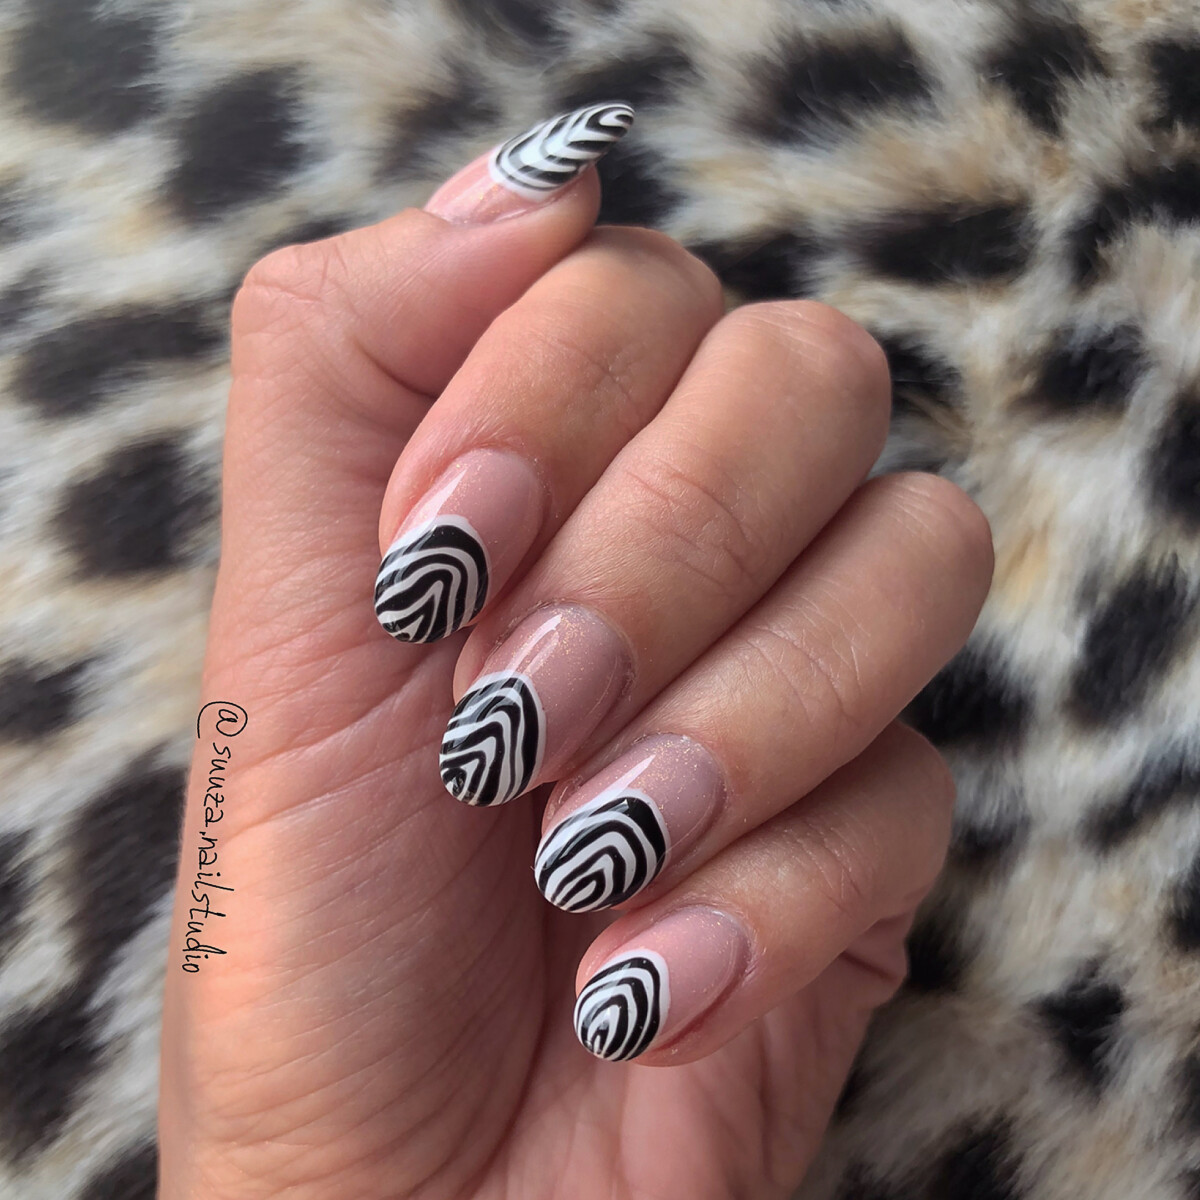 Gelnails basic + nail art extra